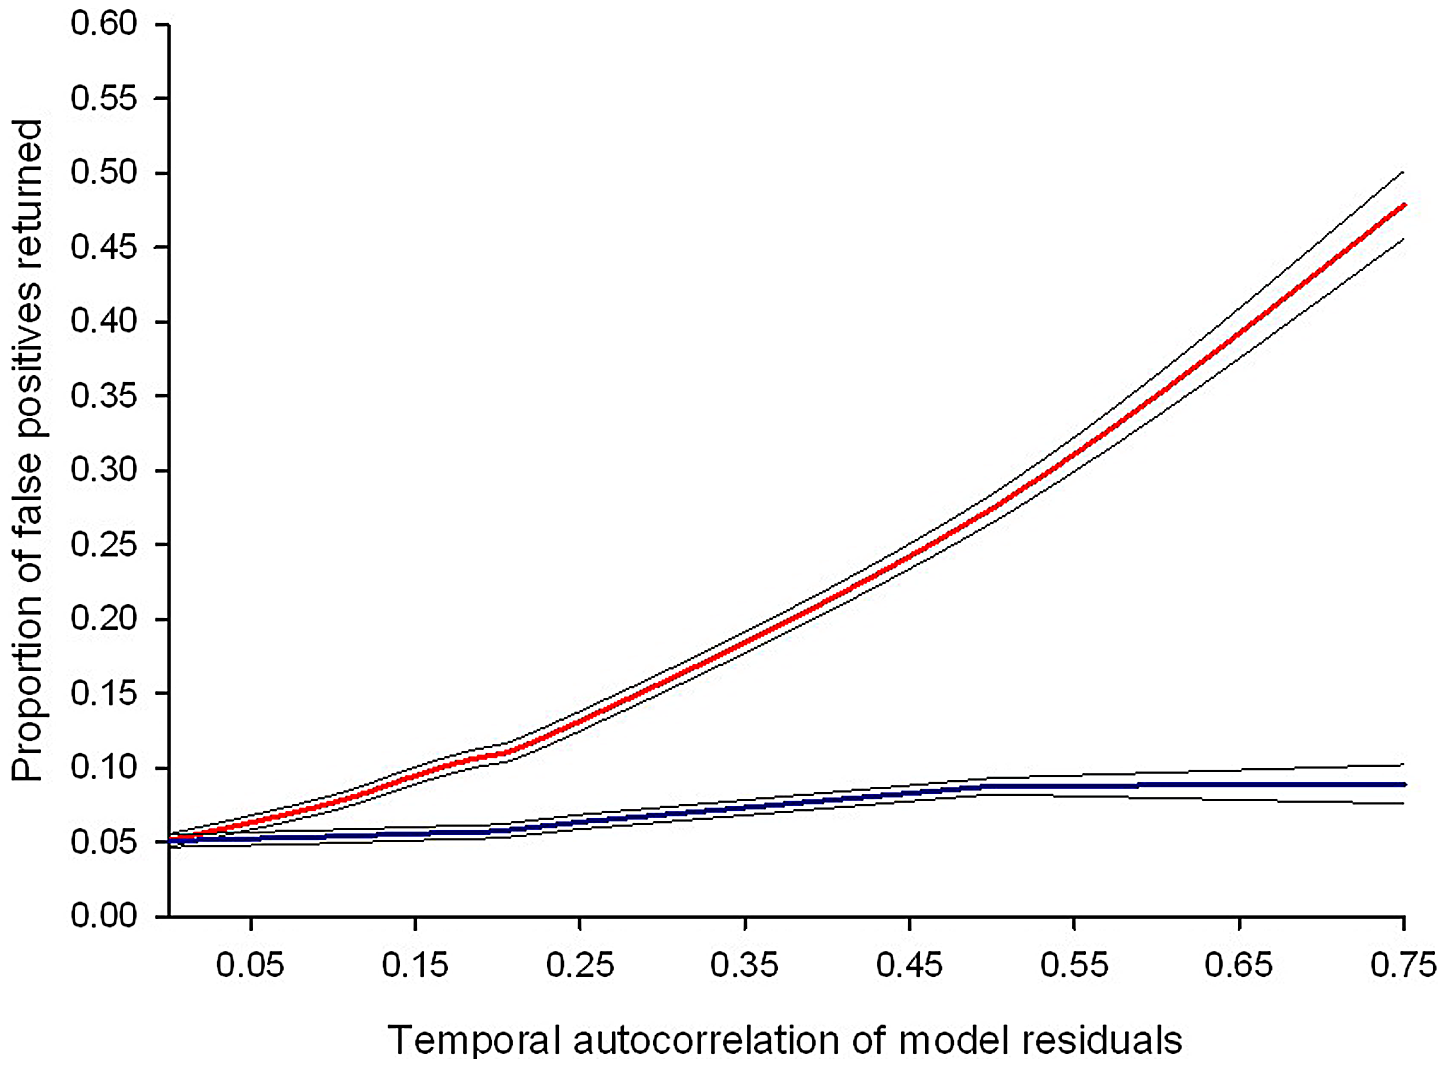 Failing to control for temporal auto-correlation increases type 1 error rates.